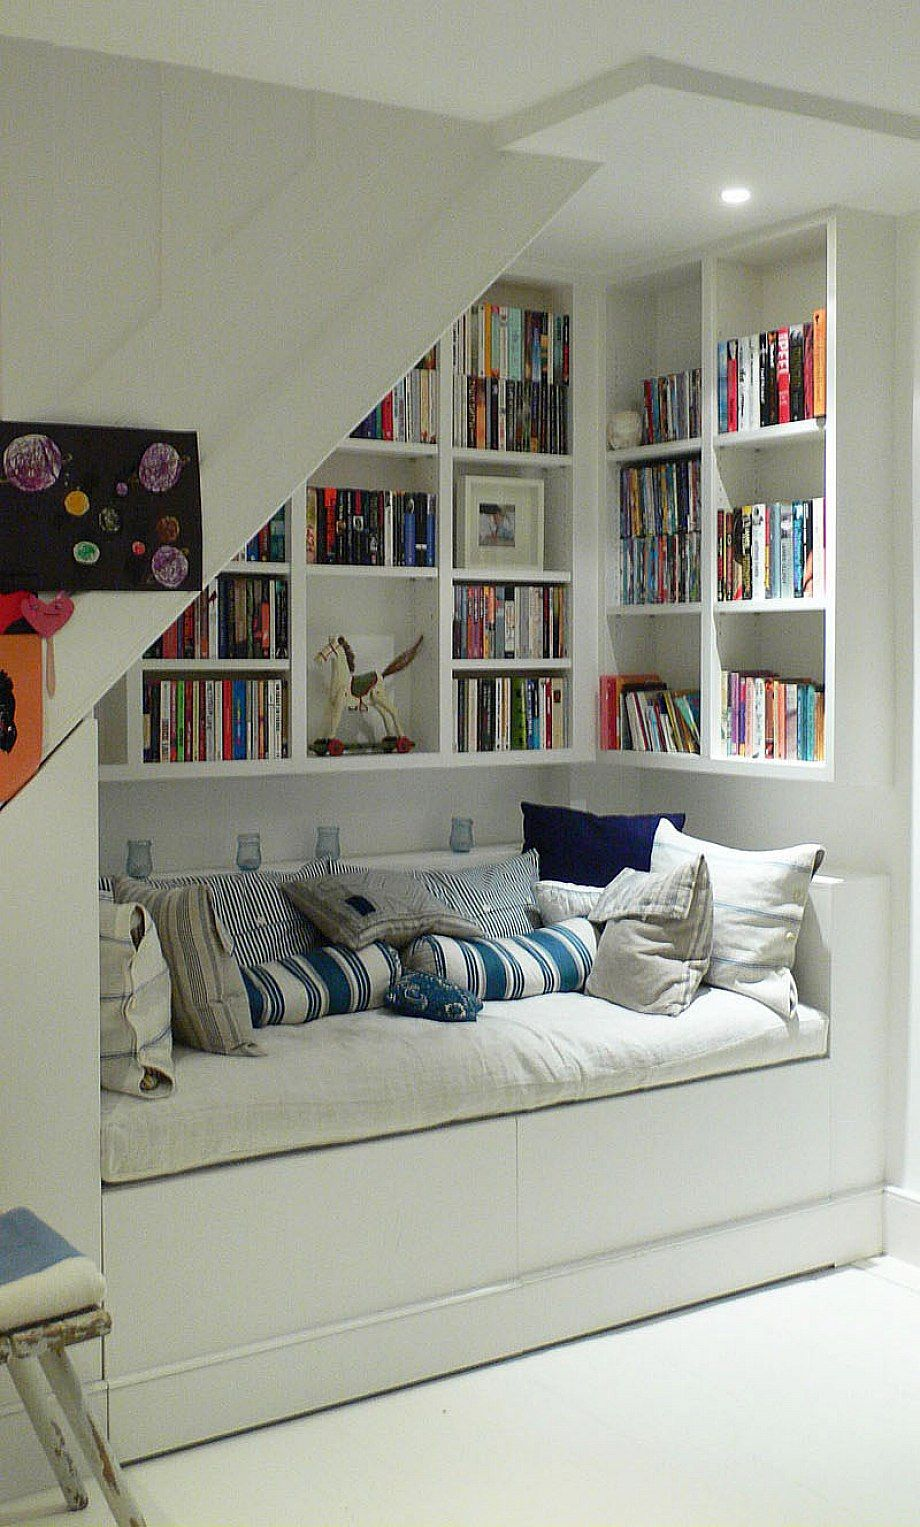 Under Stairs Storage Ideas Smart Bookshelf And Sofa Home Designs